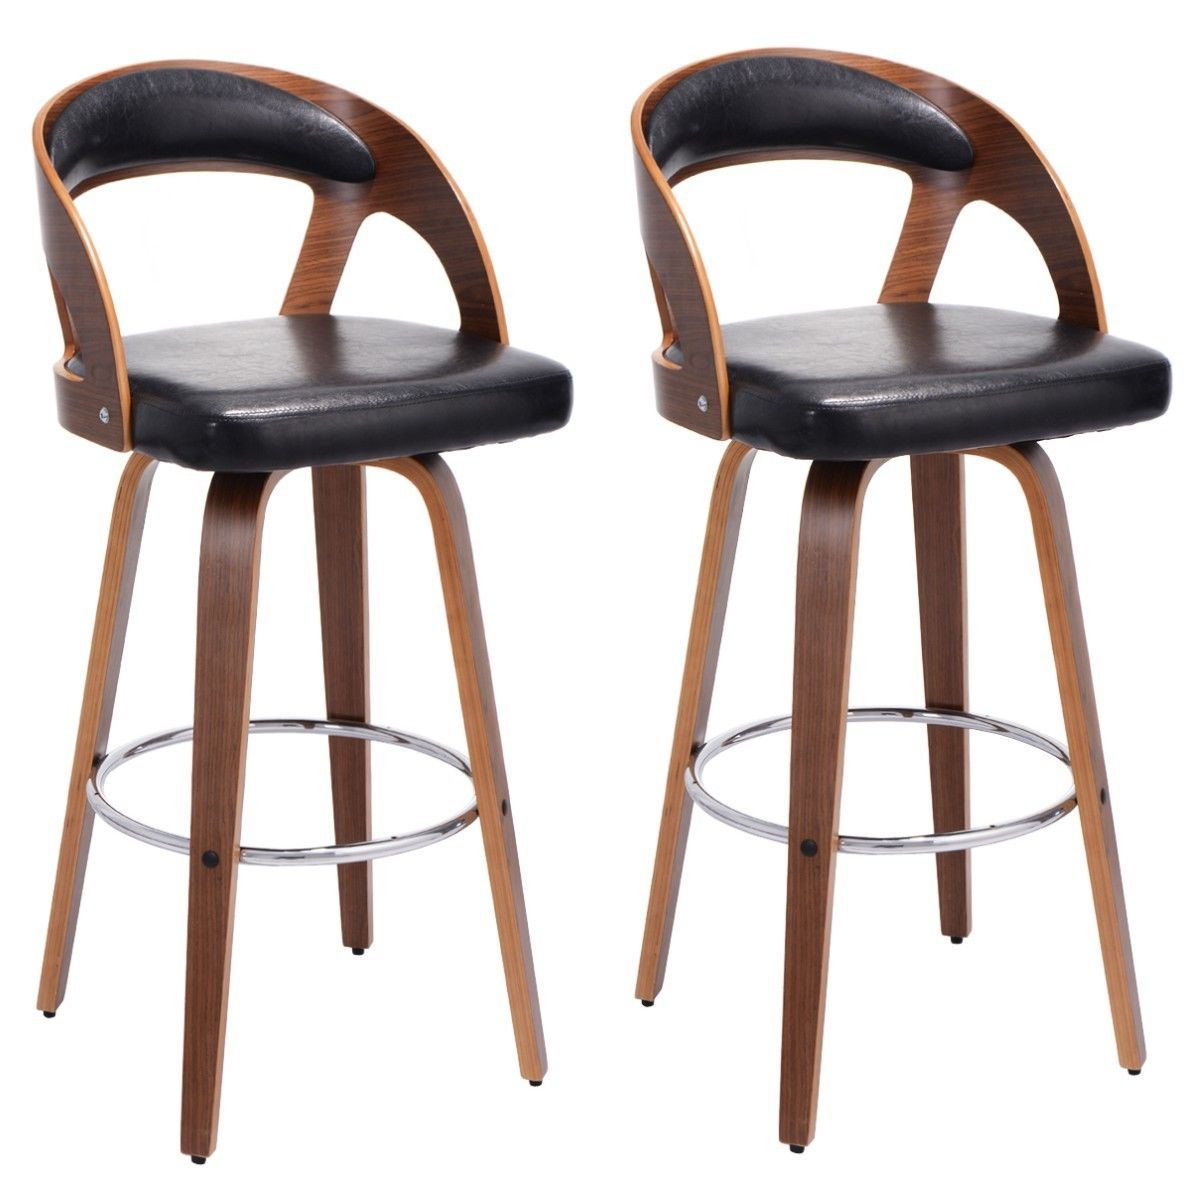 Costway Set of 2 Bentwood Bar Stools PU Leather Modern Bar Stool Bistro Pub Chair Set by Costway